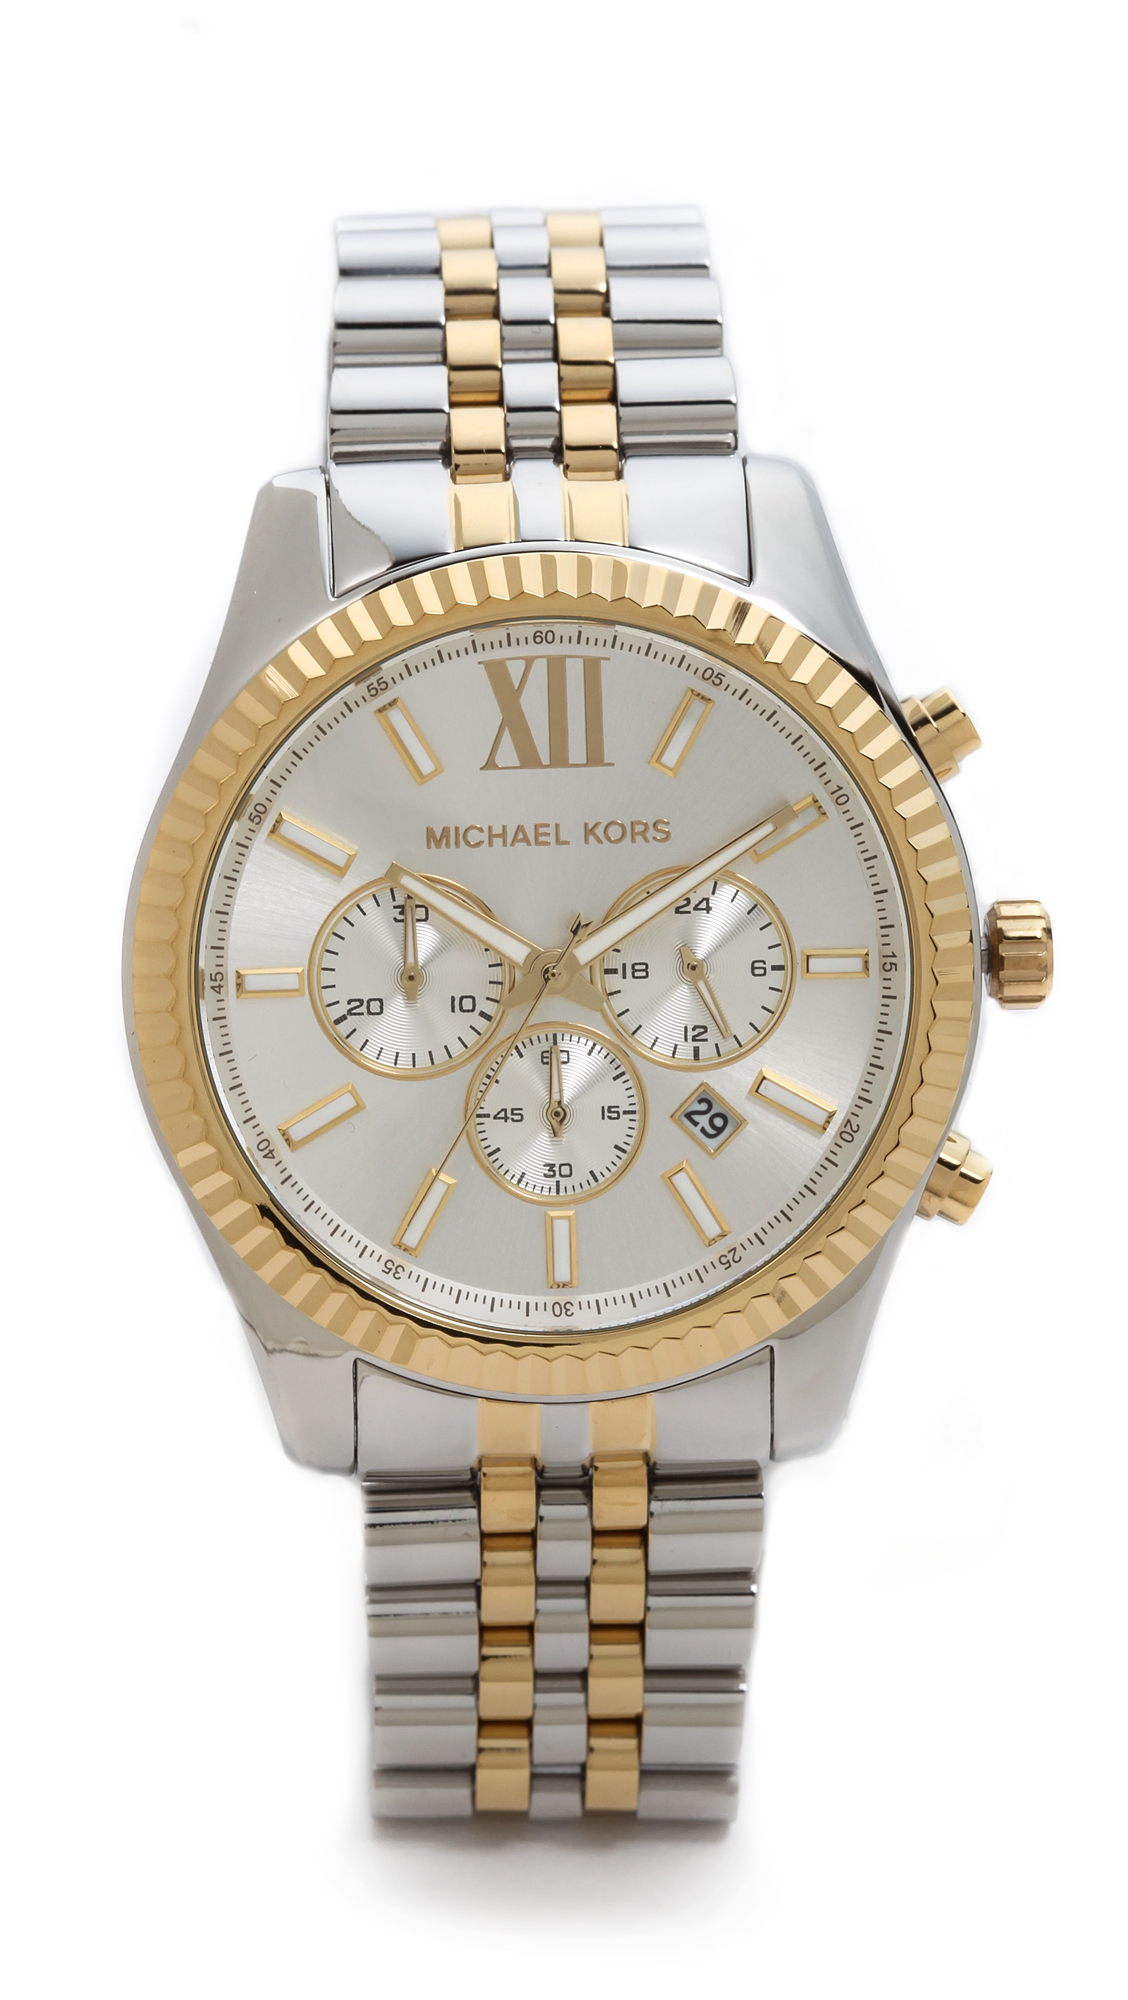 Lyst michael kors mens lexington watch in metallic for Watches michael kors